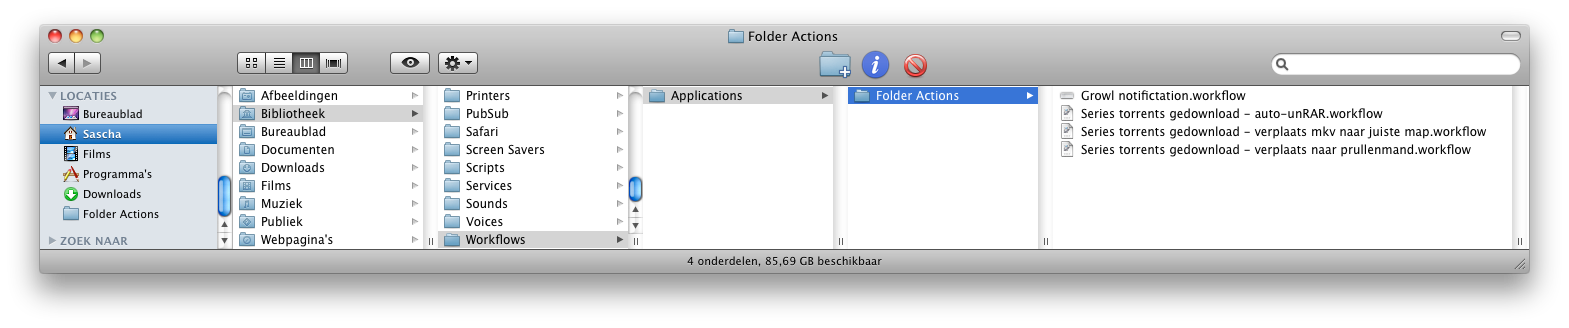 Automator folder actions Finder locatie